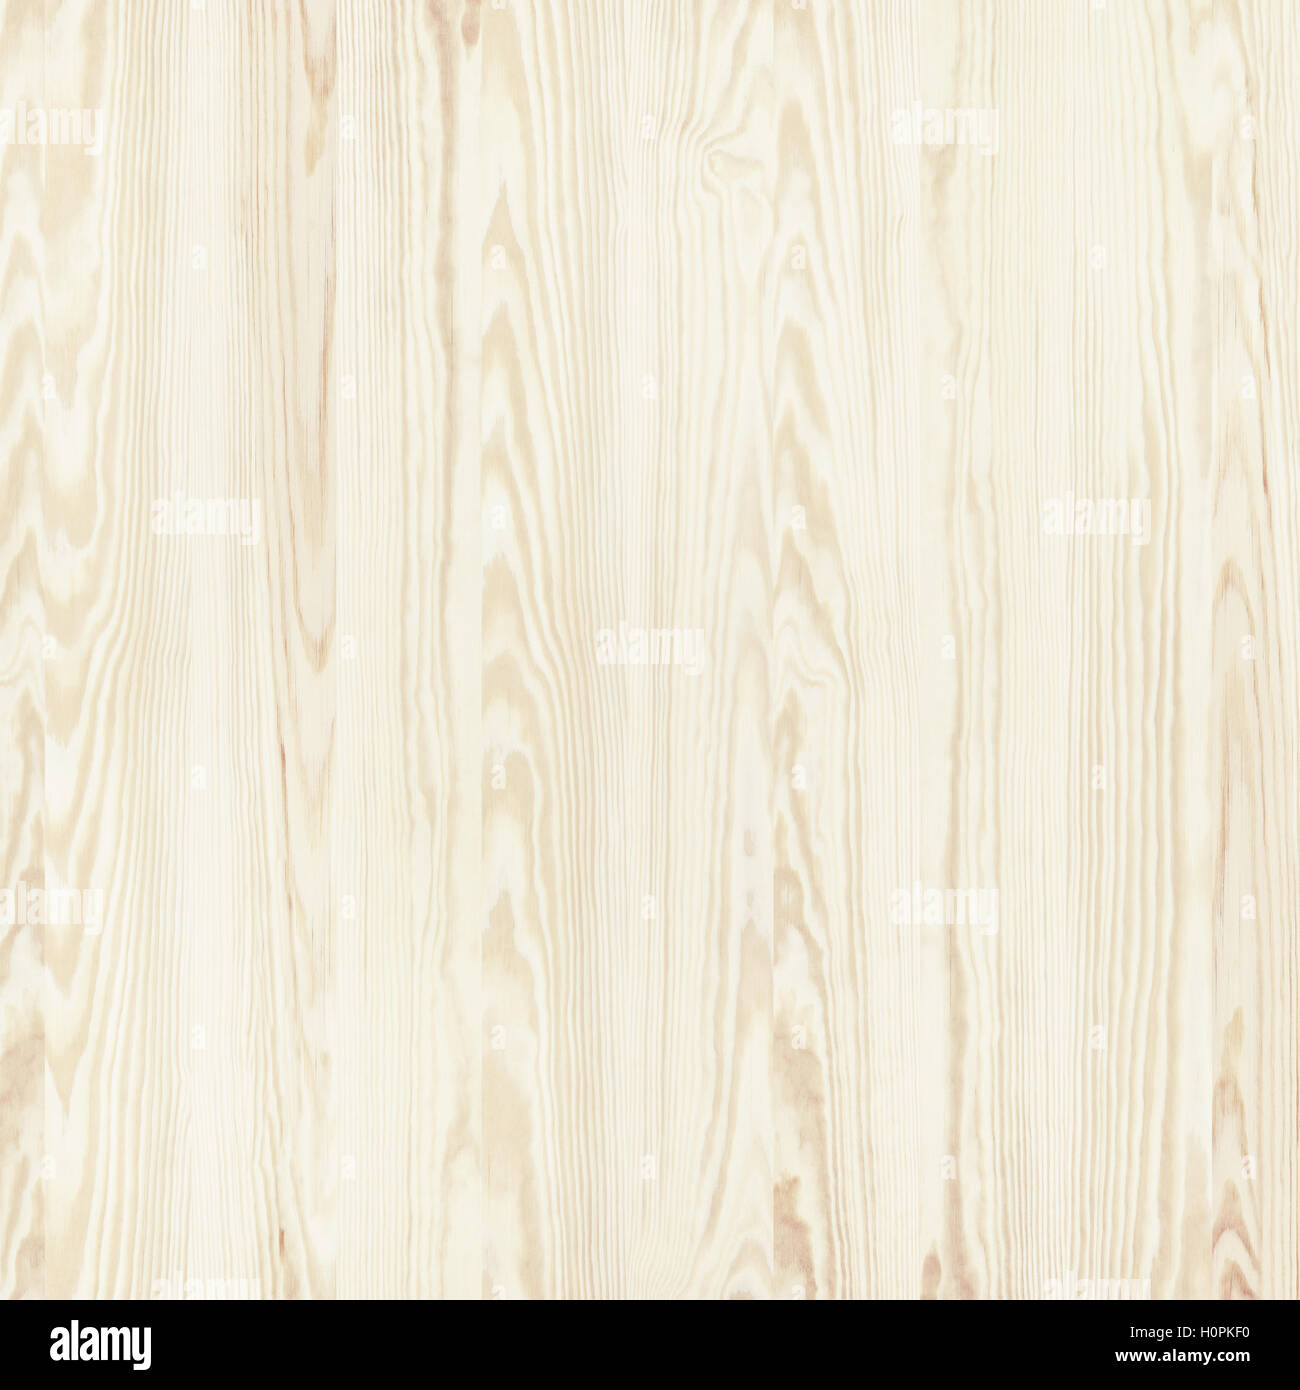 White Clean Wood Background. Bleached Pine Board Texture